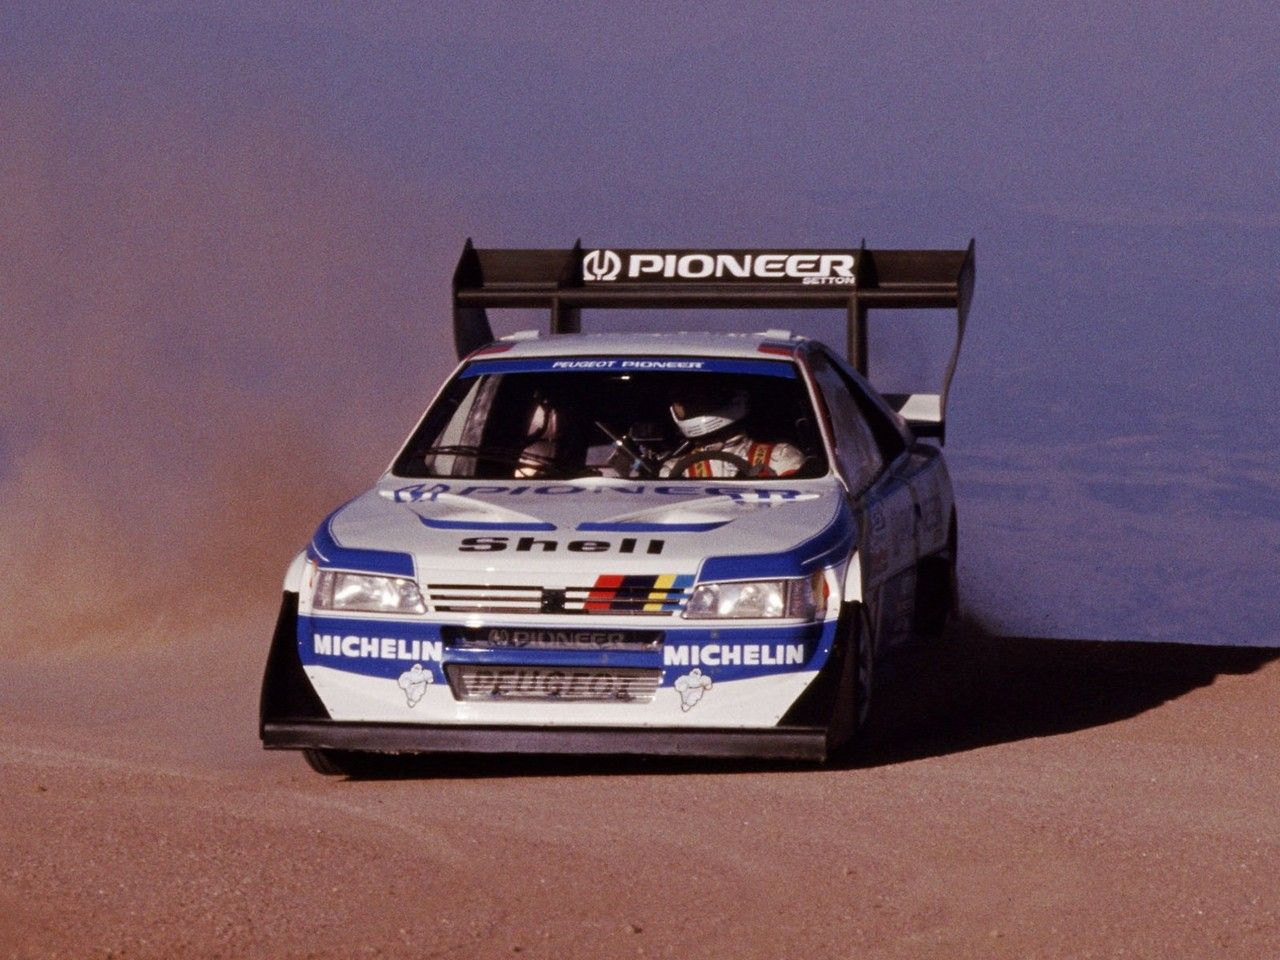 Peugeot 405 T16 Pikes Peak Car Pikes Peak Motorsport